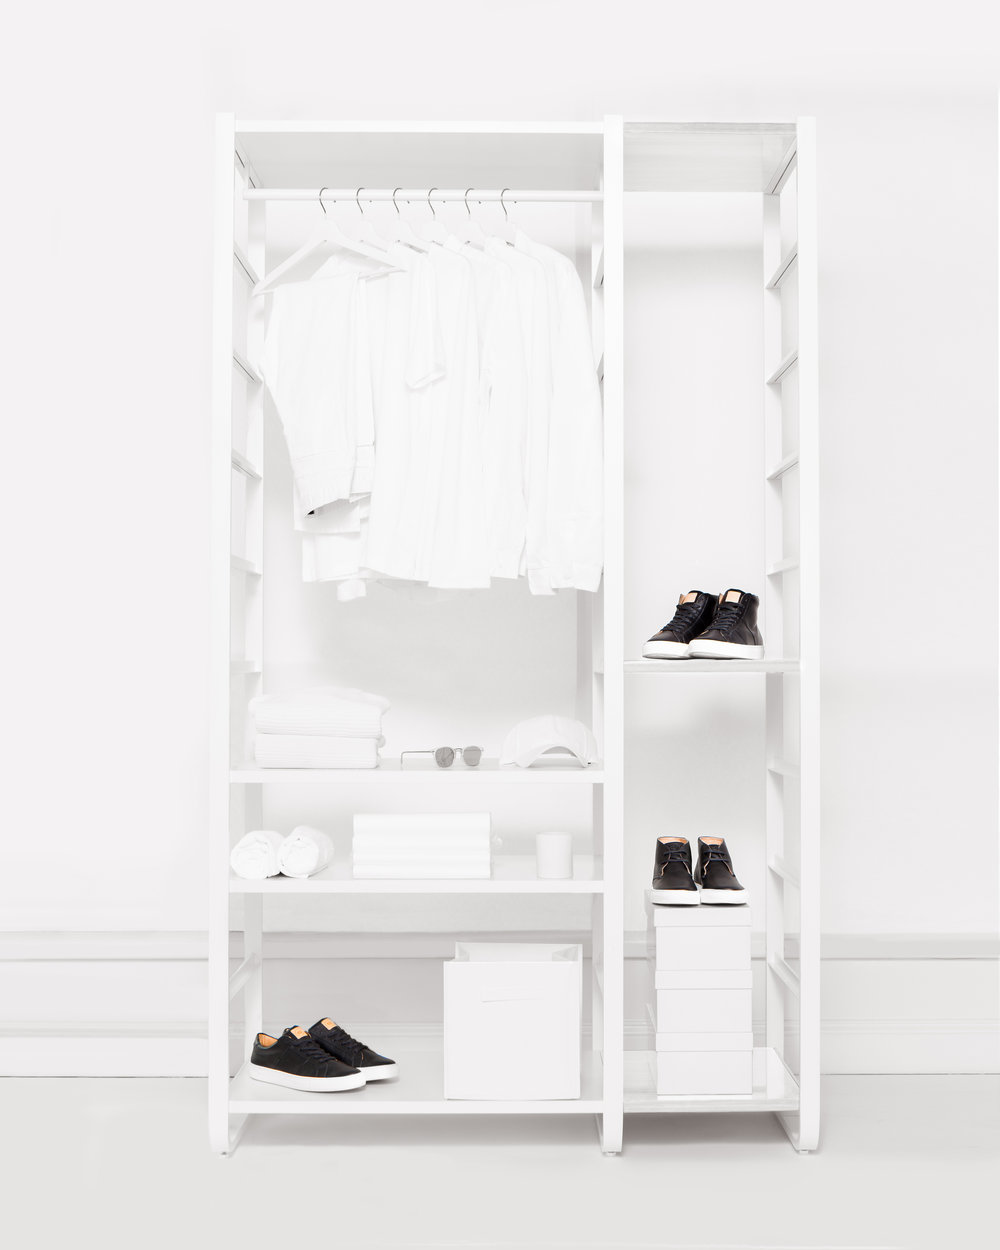 m-163-Build Your Closet-02.jpg